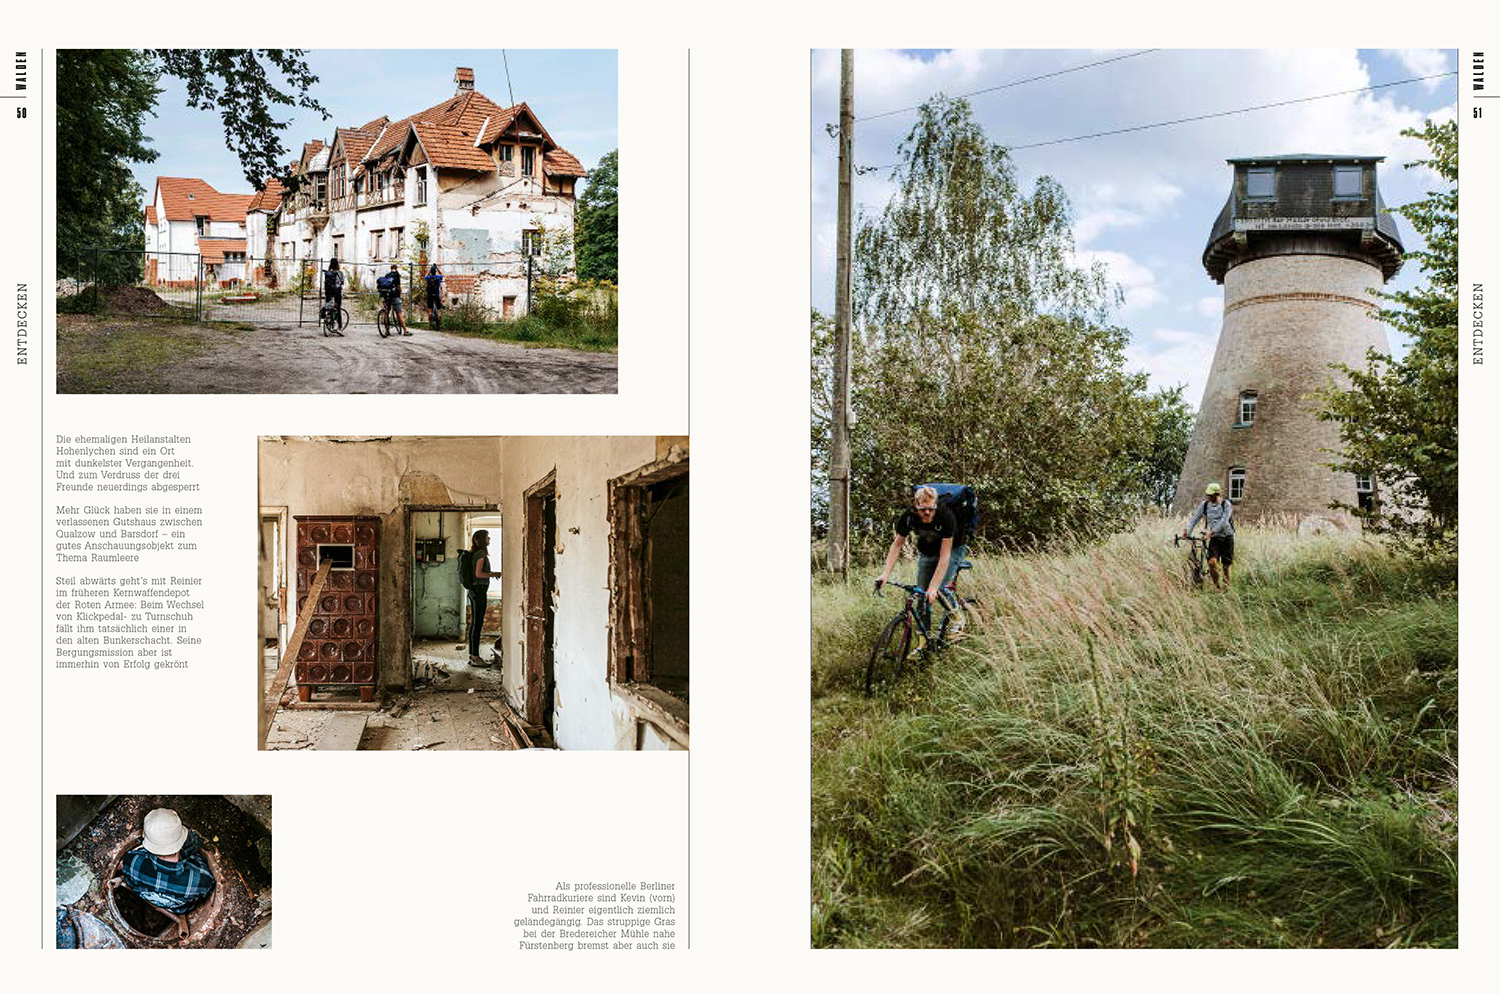 wecyclebrandenburg_lostplaces_walden_magazin4.jpg